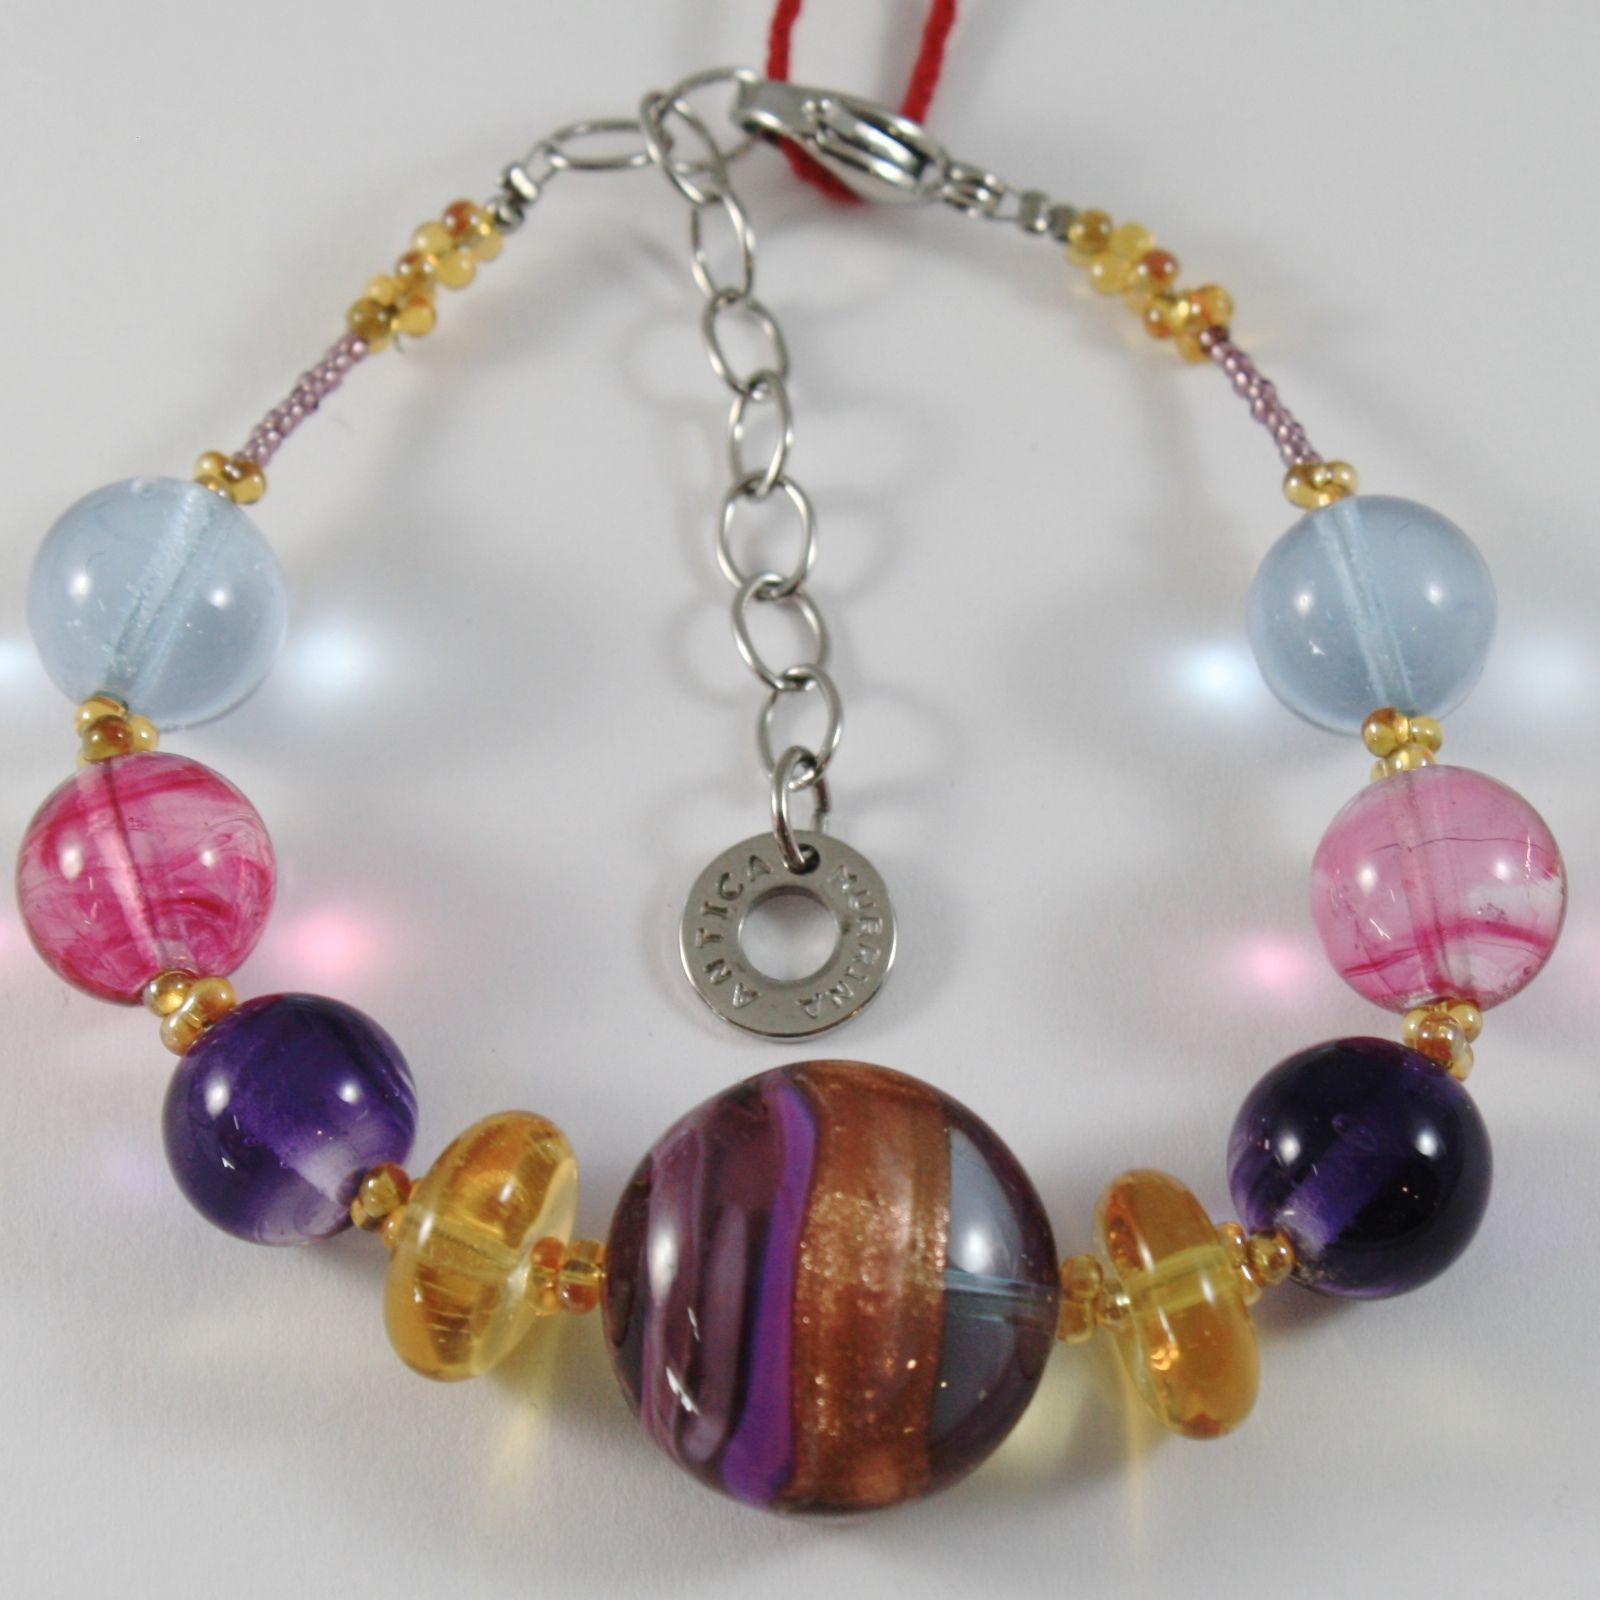 BRACELET ANTICA MURRINA VENEZIA WITH MURANO GLASS BLUE PURPLE YELLOW BR578A05